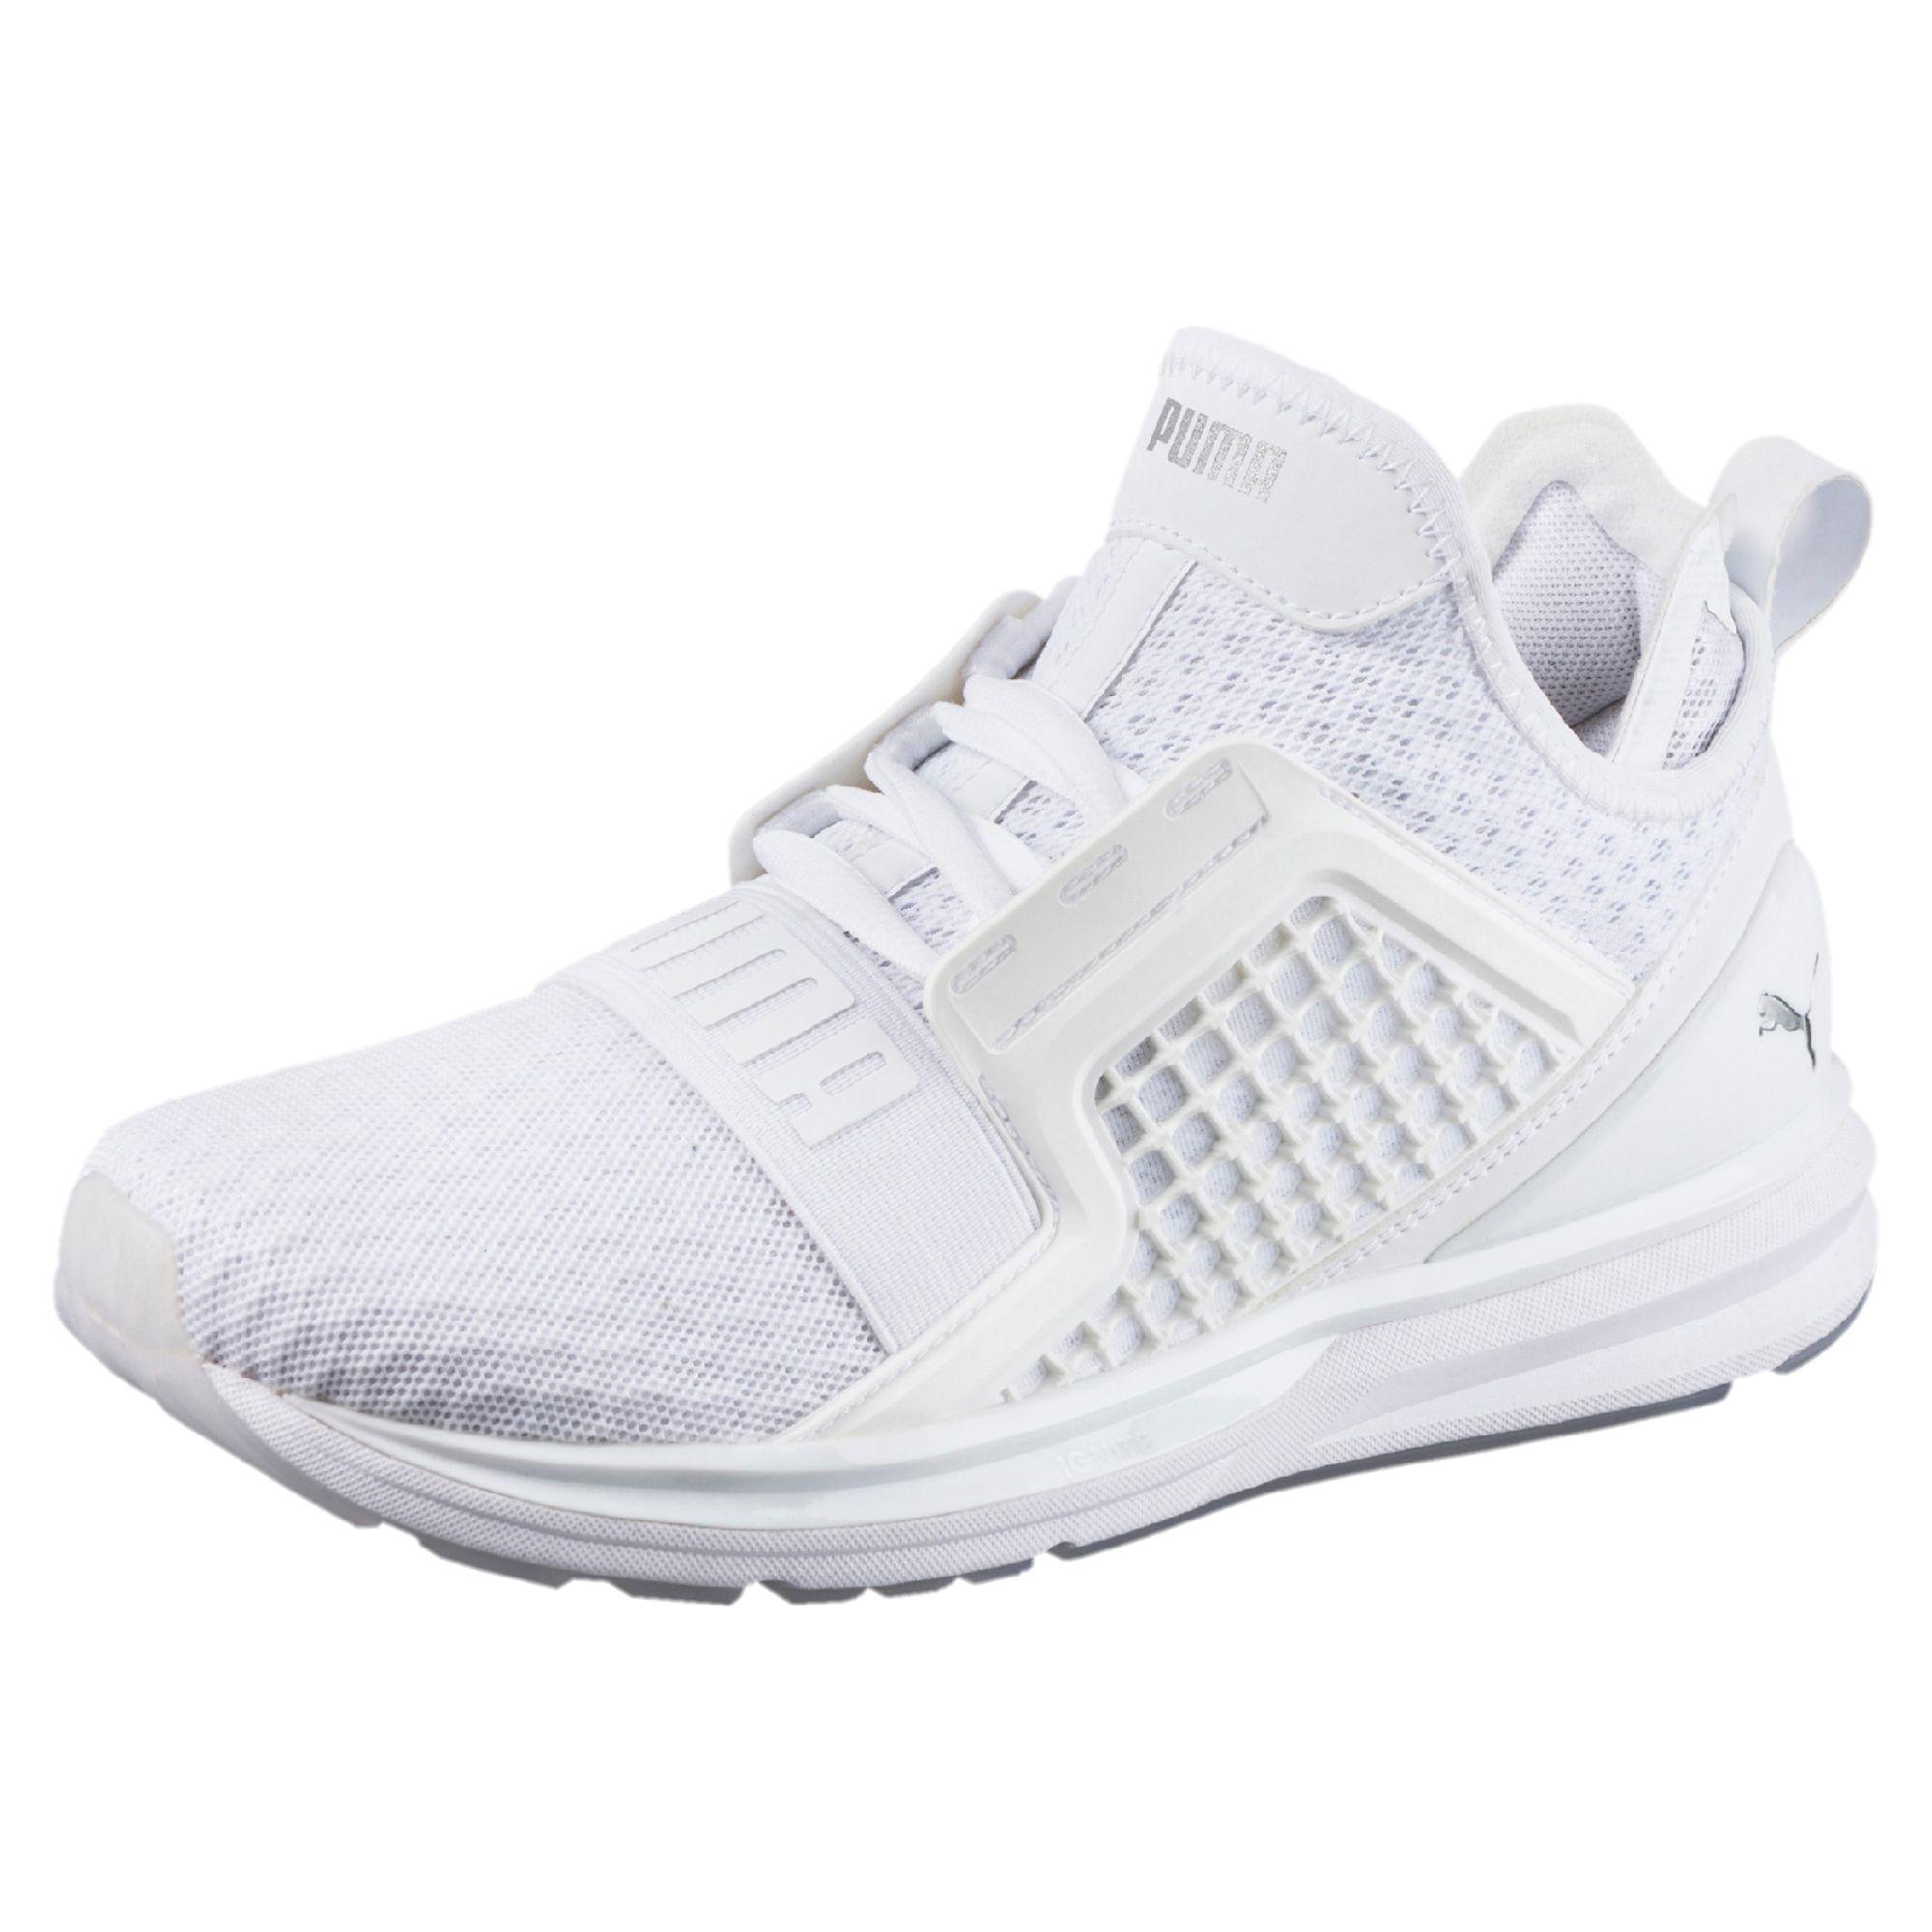 06e0915f367 Lyst - PUMA Ignite Limitless Women s Training Shoes in White